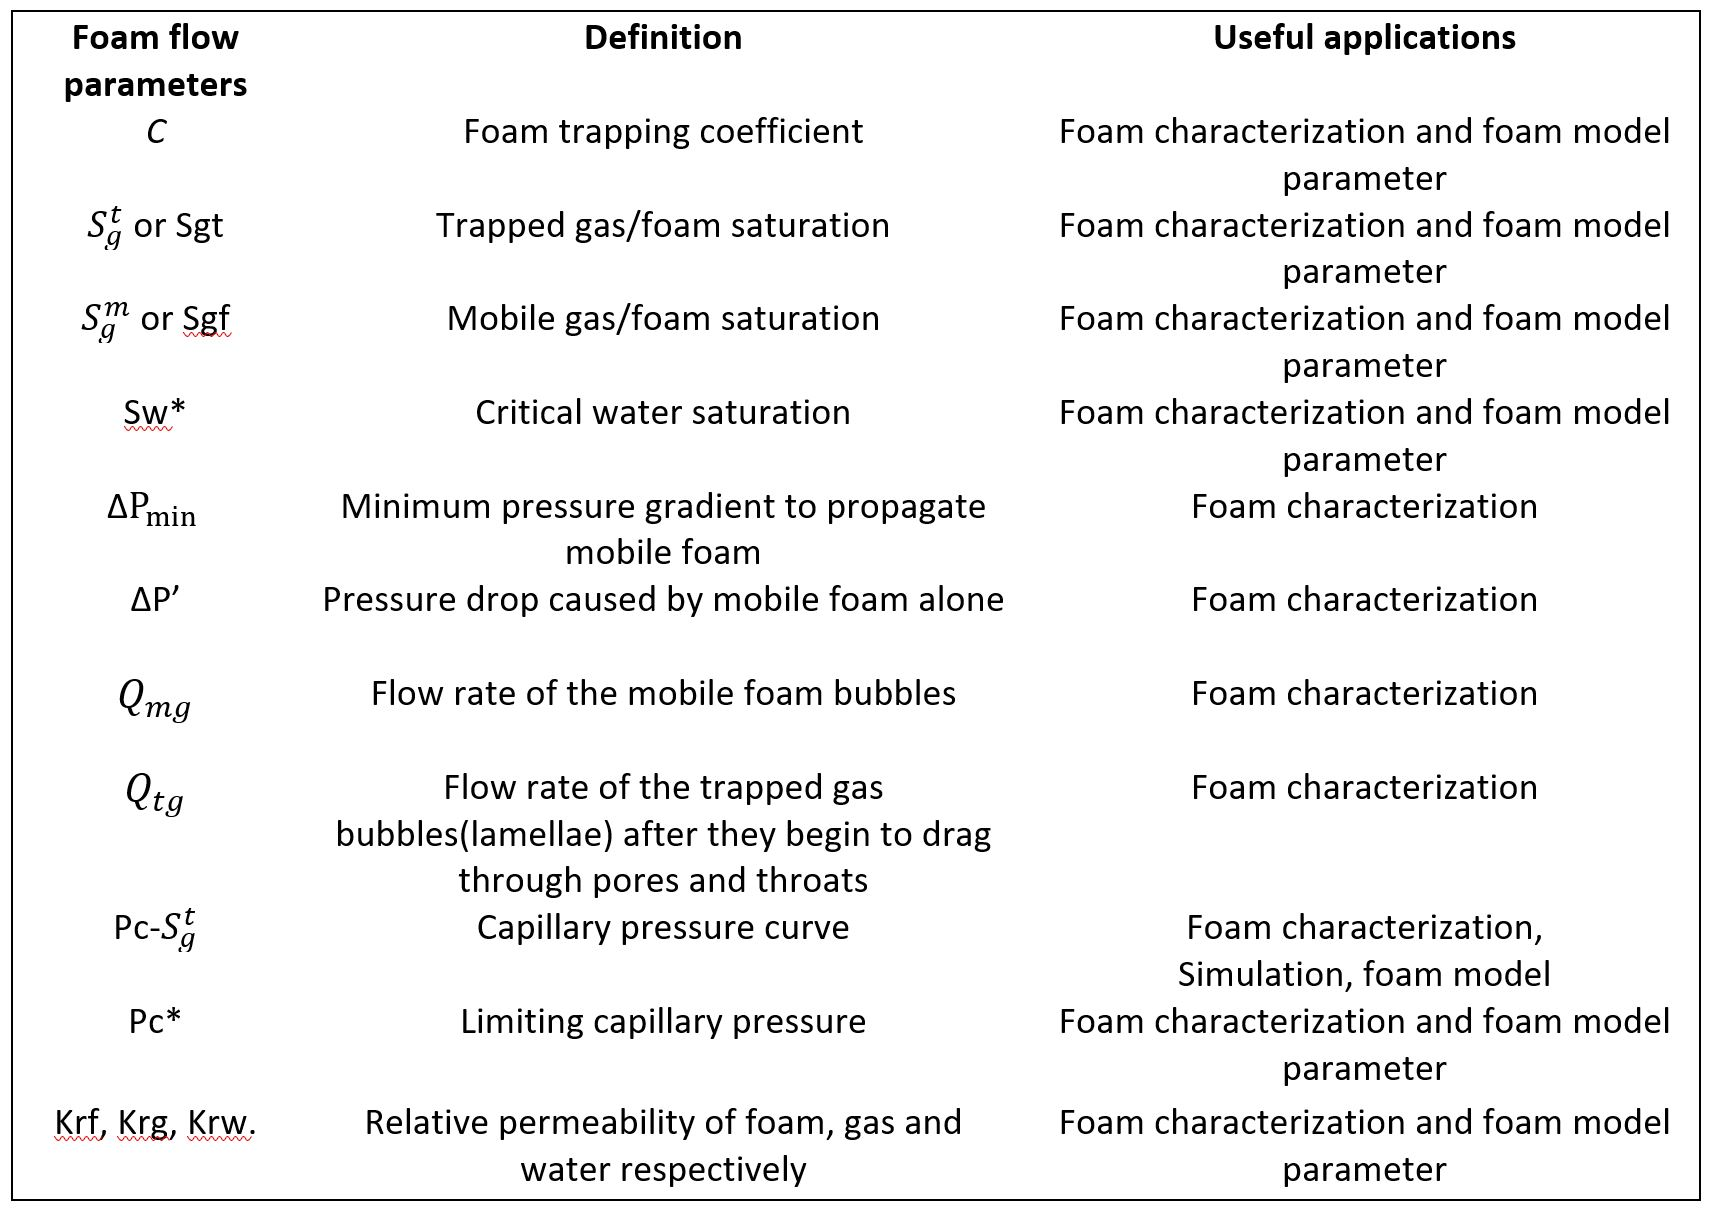 Table 1. Summary of foam flow parameters that can be derived from this method (Ref. 2 – 4).